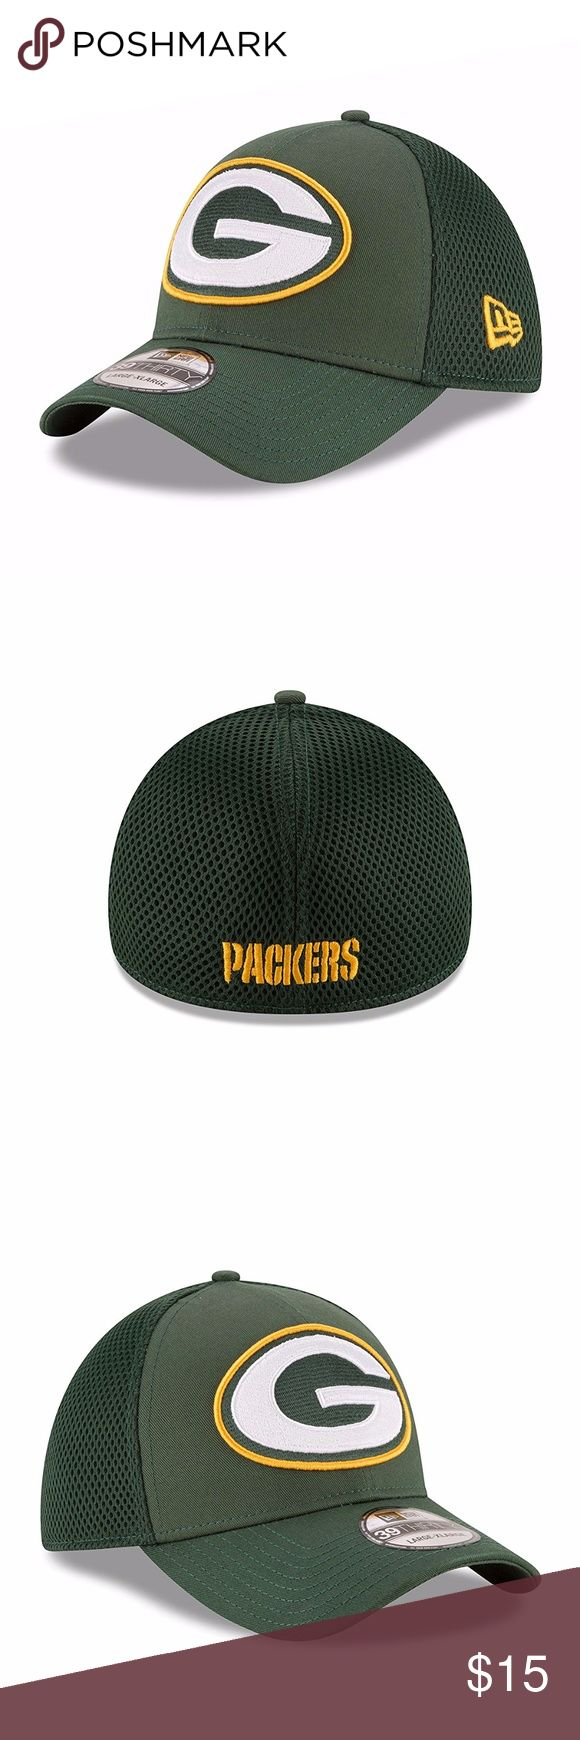 Green Bay Packers Mega Team Neo 39THIRTY Cap Brand New Officially Licensed with tags. This Green Bay Packers New Era Mega Team Neo 39THIRTY features bold embroidered Packers logo on the front and embroidered name on the back with stretch fit. SM-MED (7 1/8- 7 1/2)(56.8cm-59.6) 190292735268 Med-LG (7 3/8- 7 3/4)(58.7cm-59.6cm) 190292735251 New Era Accessories Hats